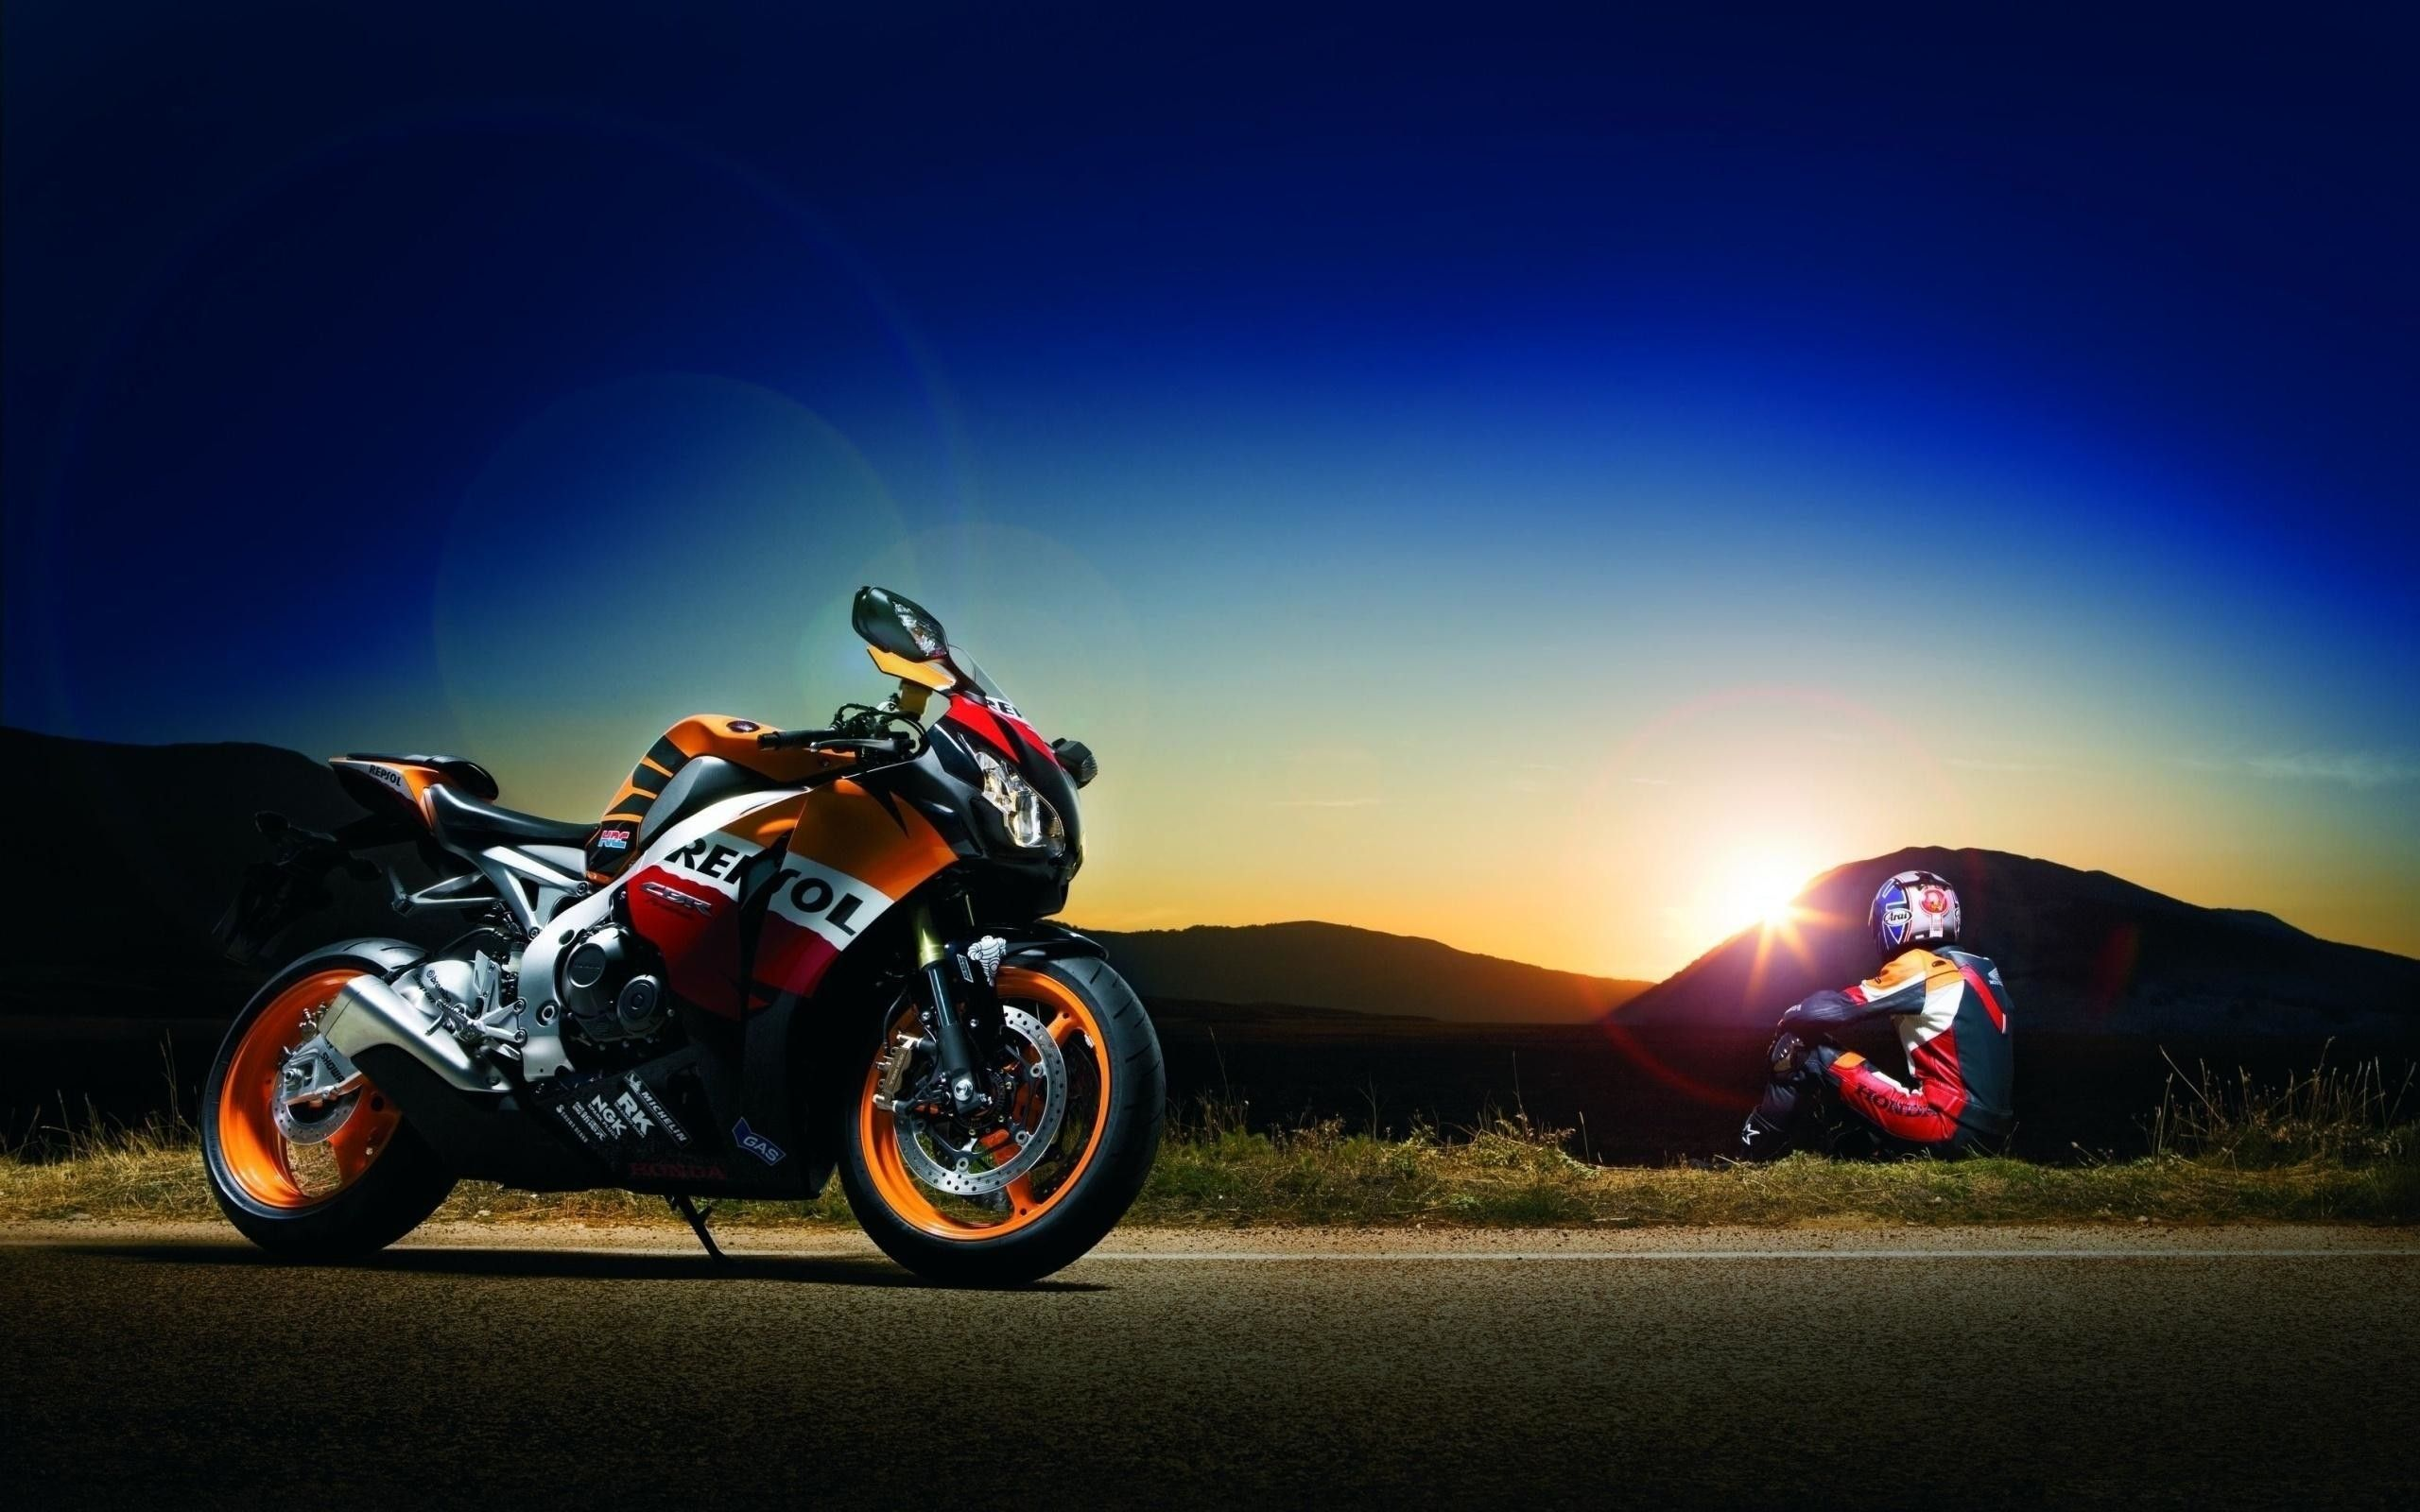 Cars And Bikes Wallpapers Top Free Cars And Bikes Backgrounds Wallpaperaccess